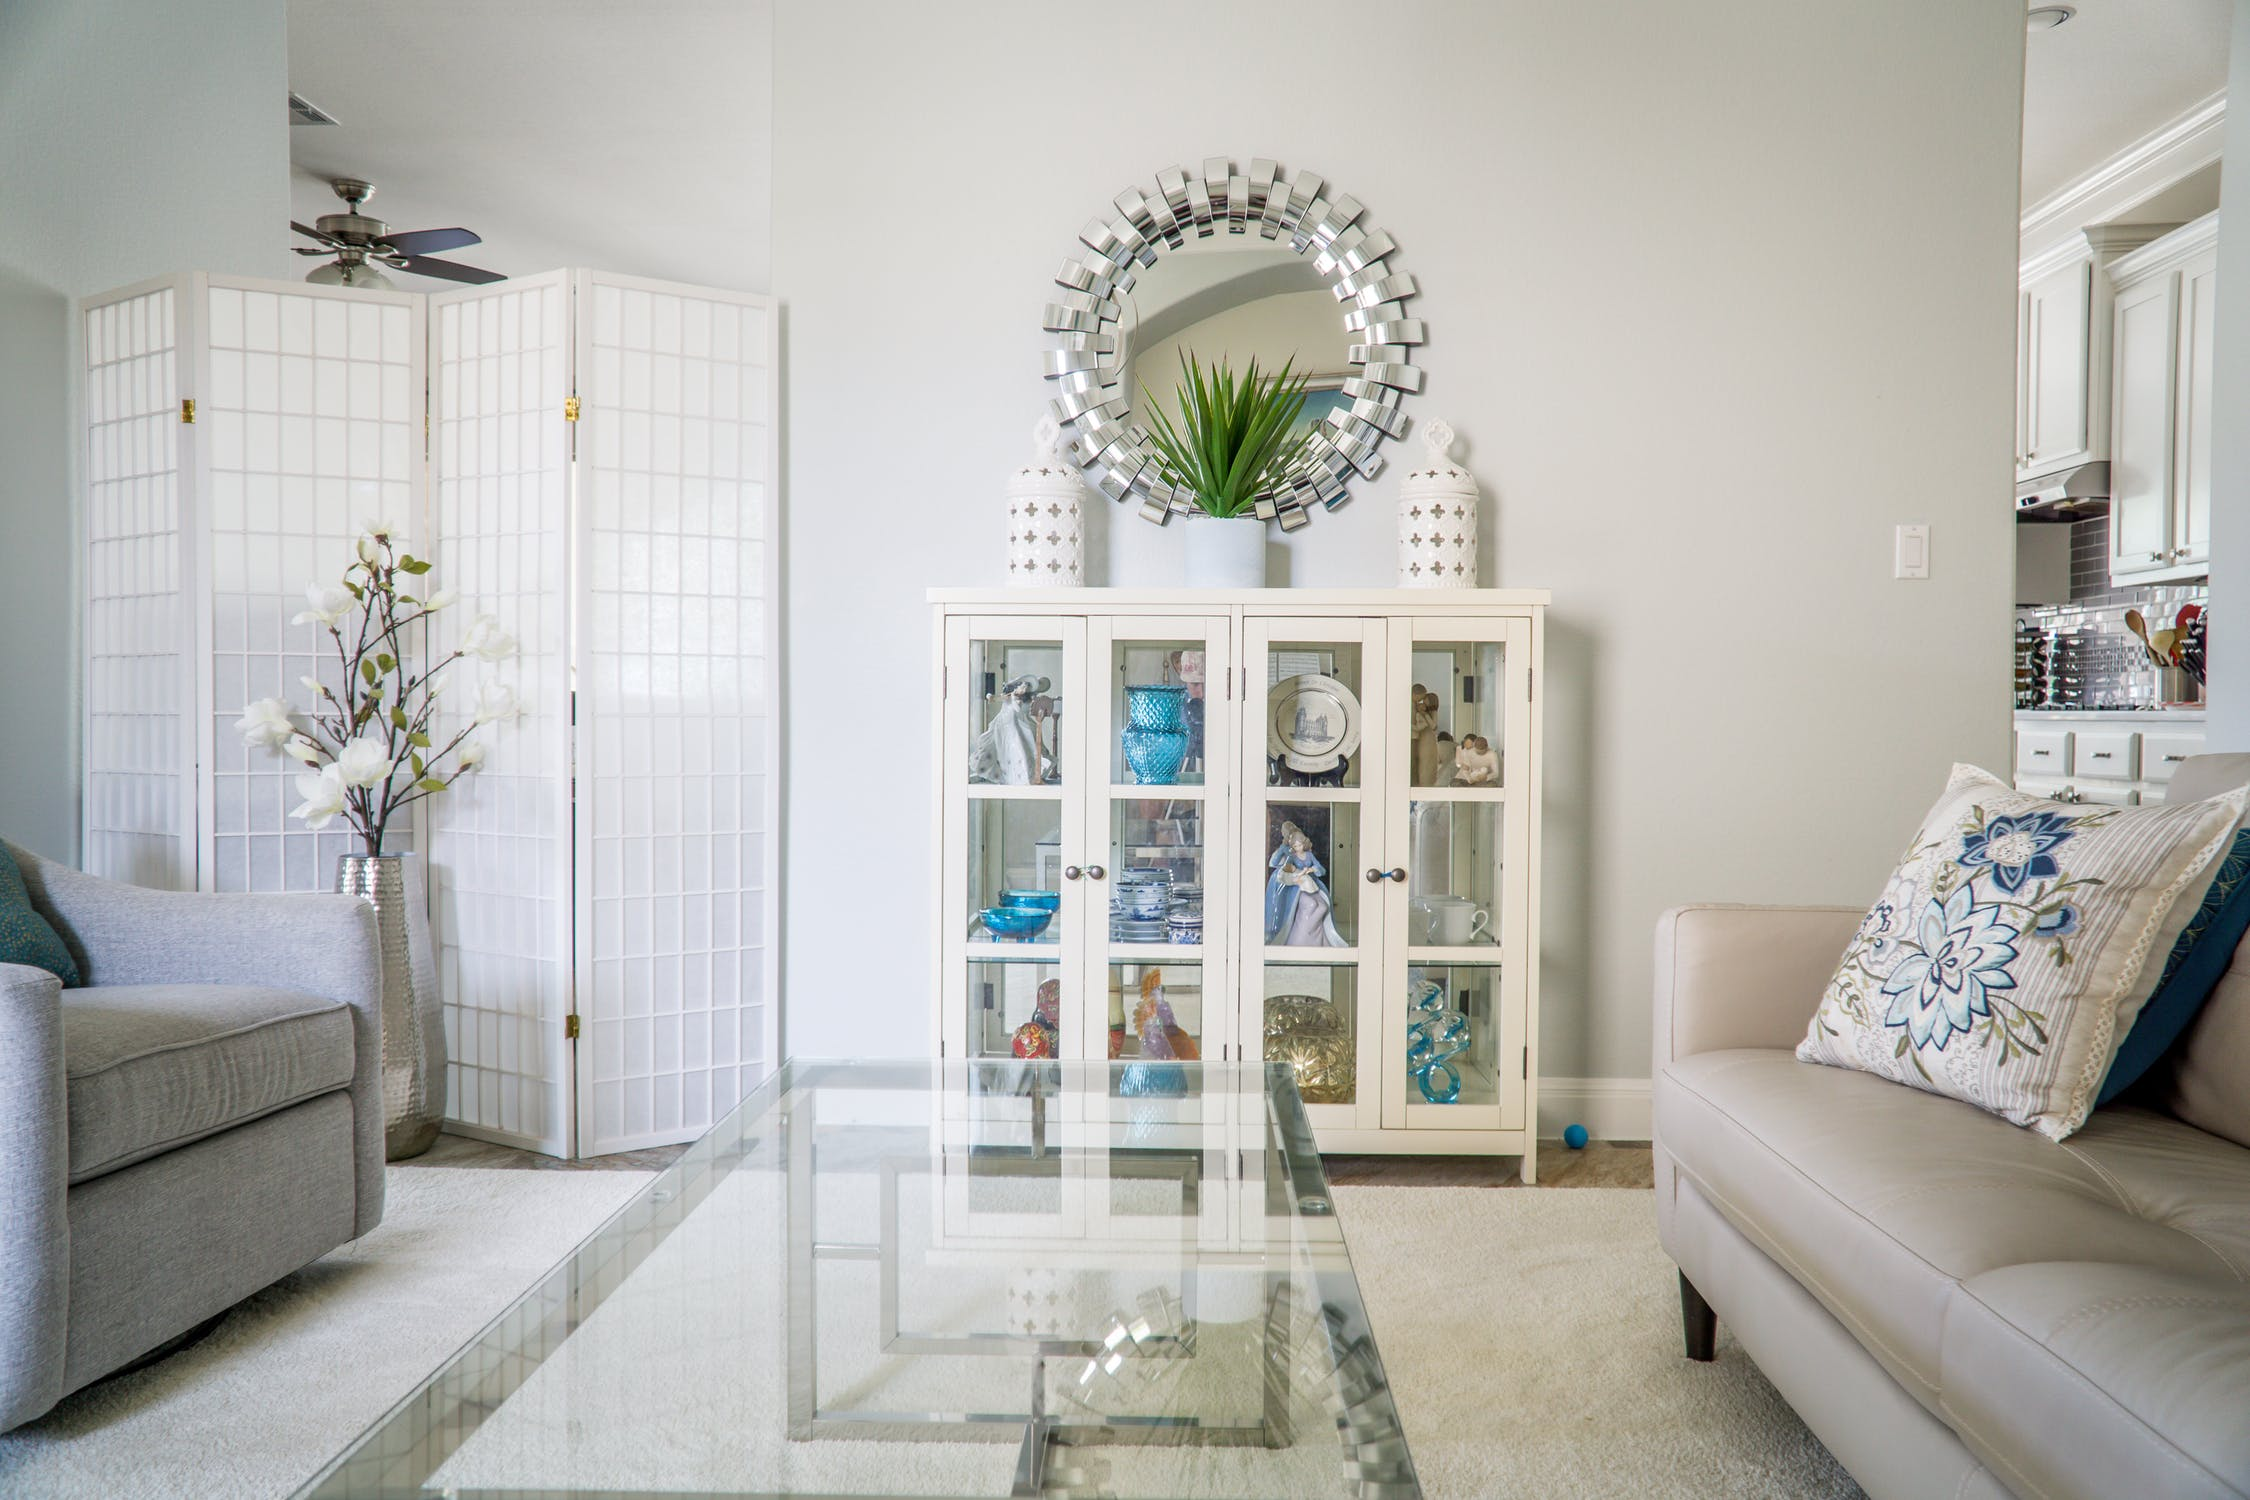 Top decoration ideas for your new home